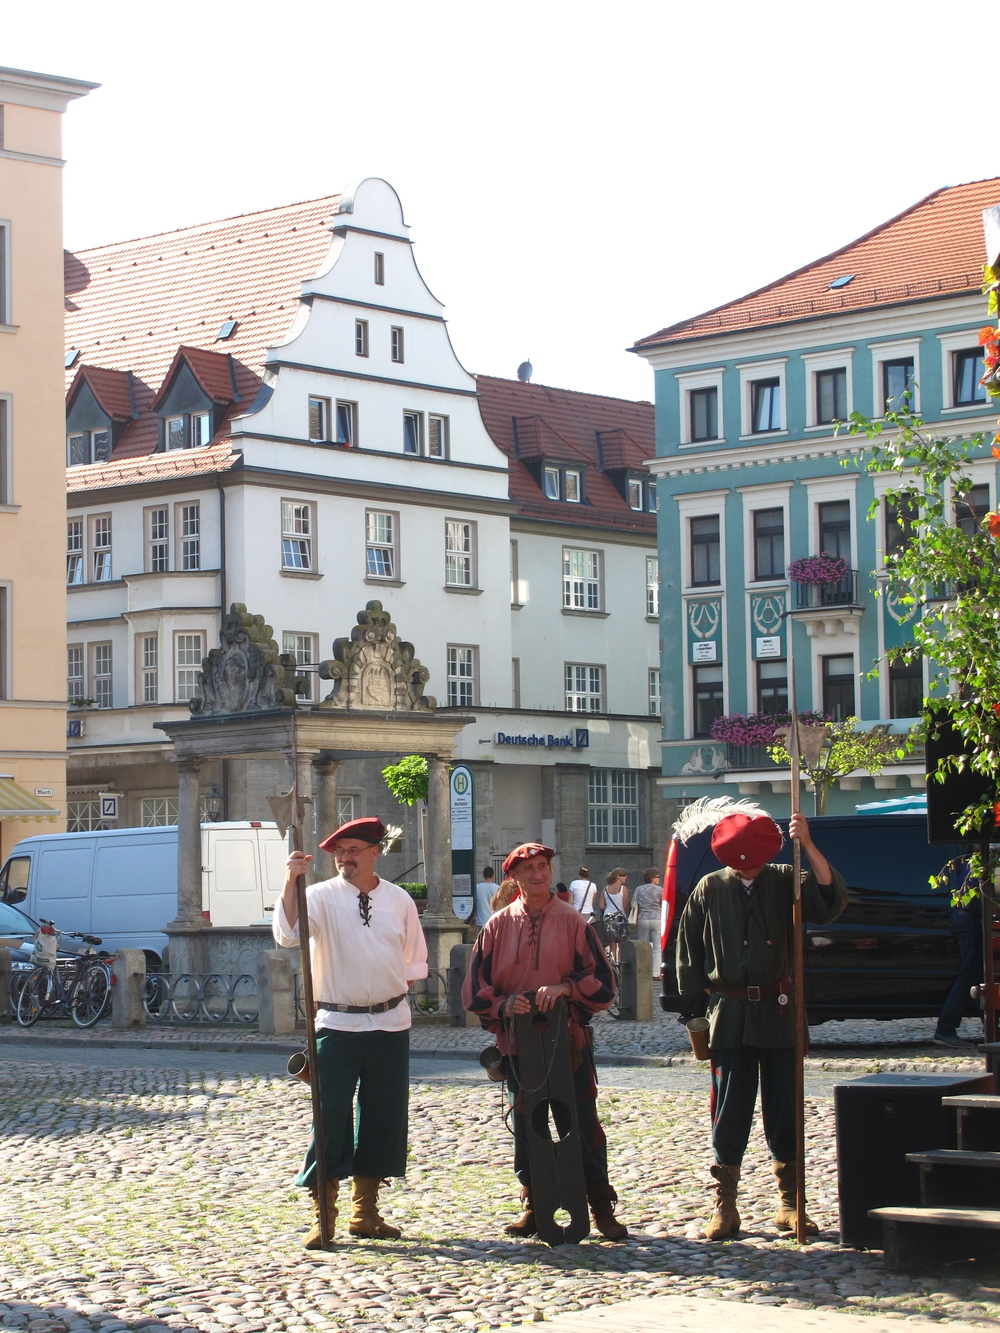 Guards at the Weinfest in Wittenberg, dressed in medieval costume.